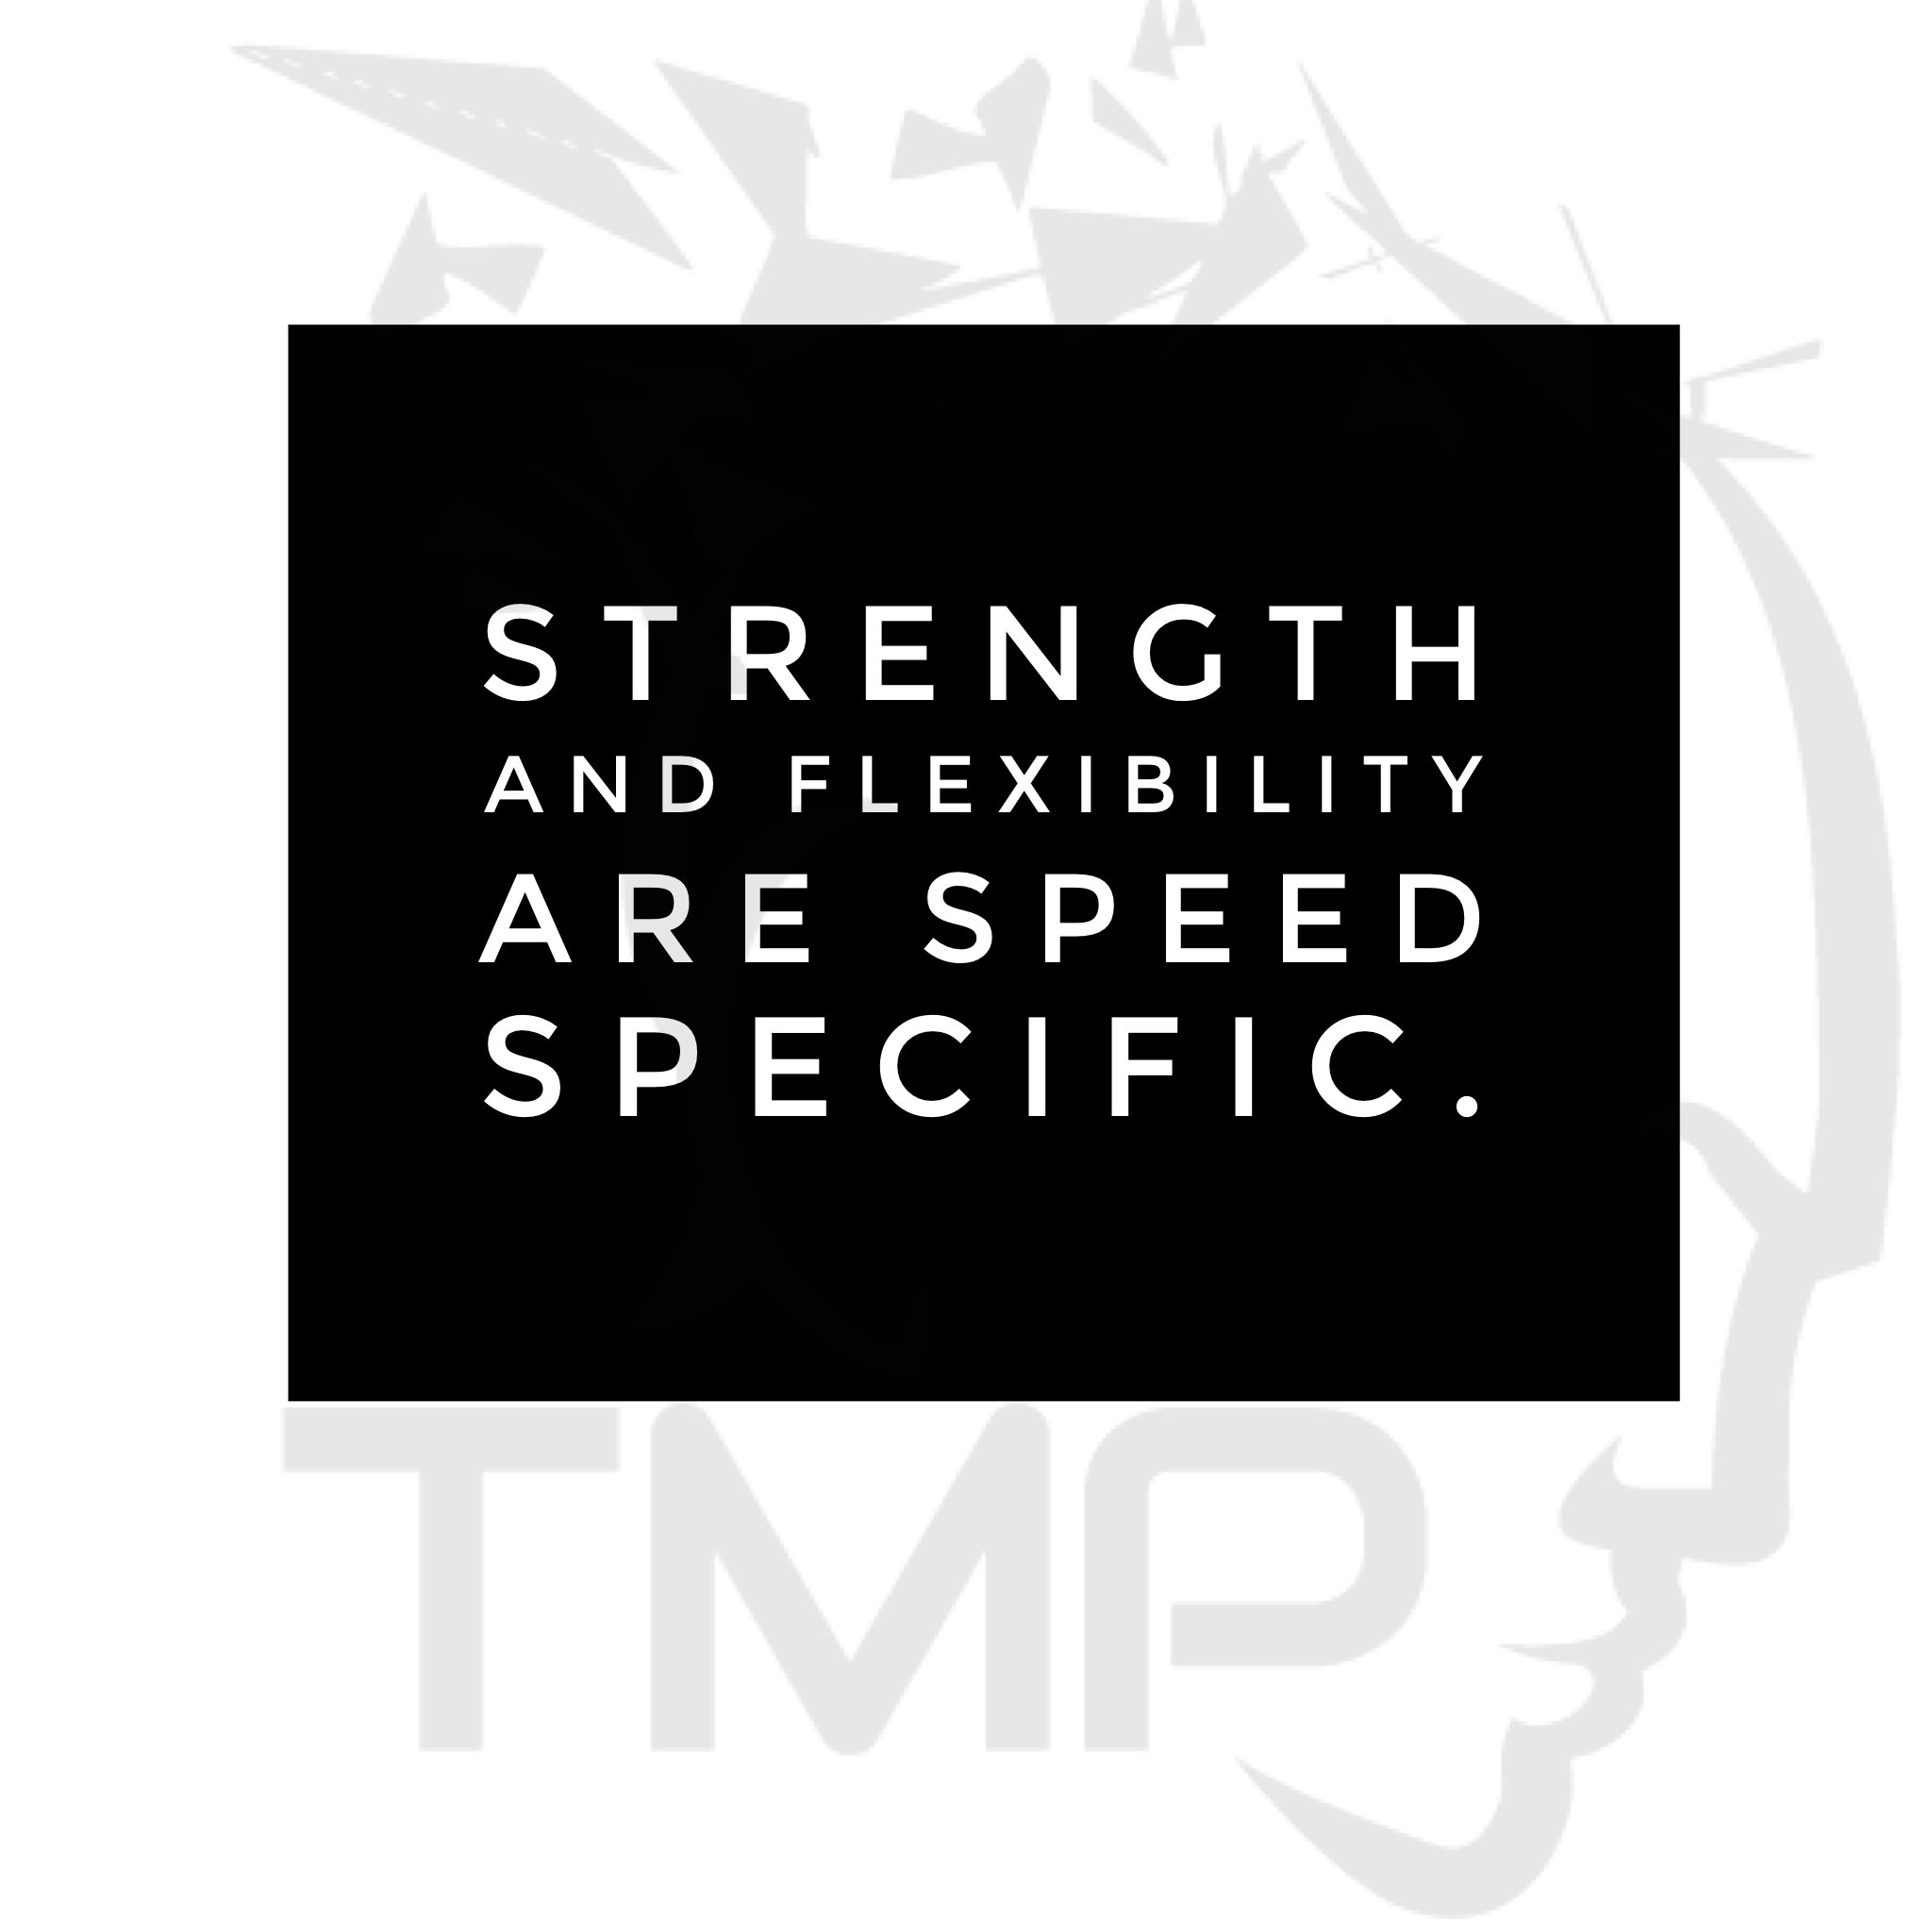 strength and flexibility are speed specific